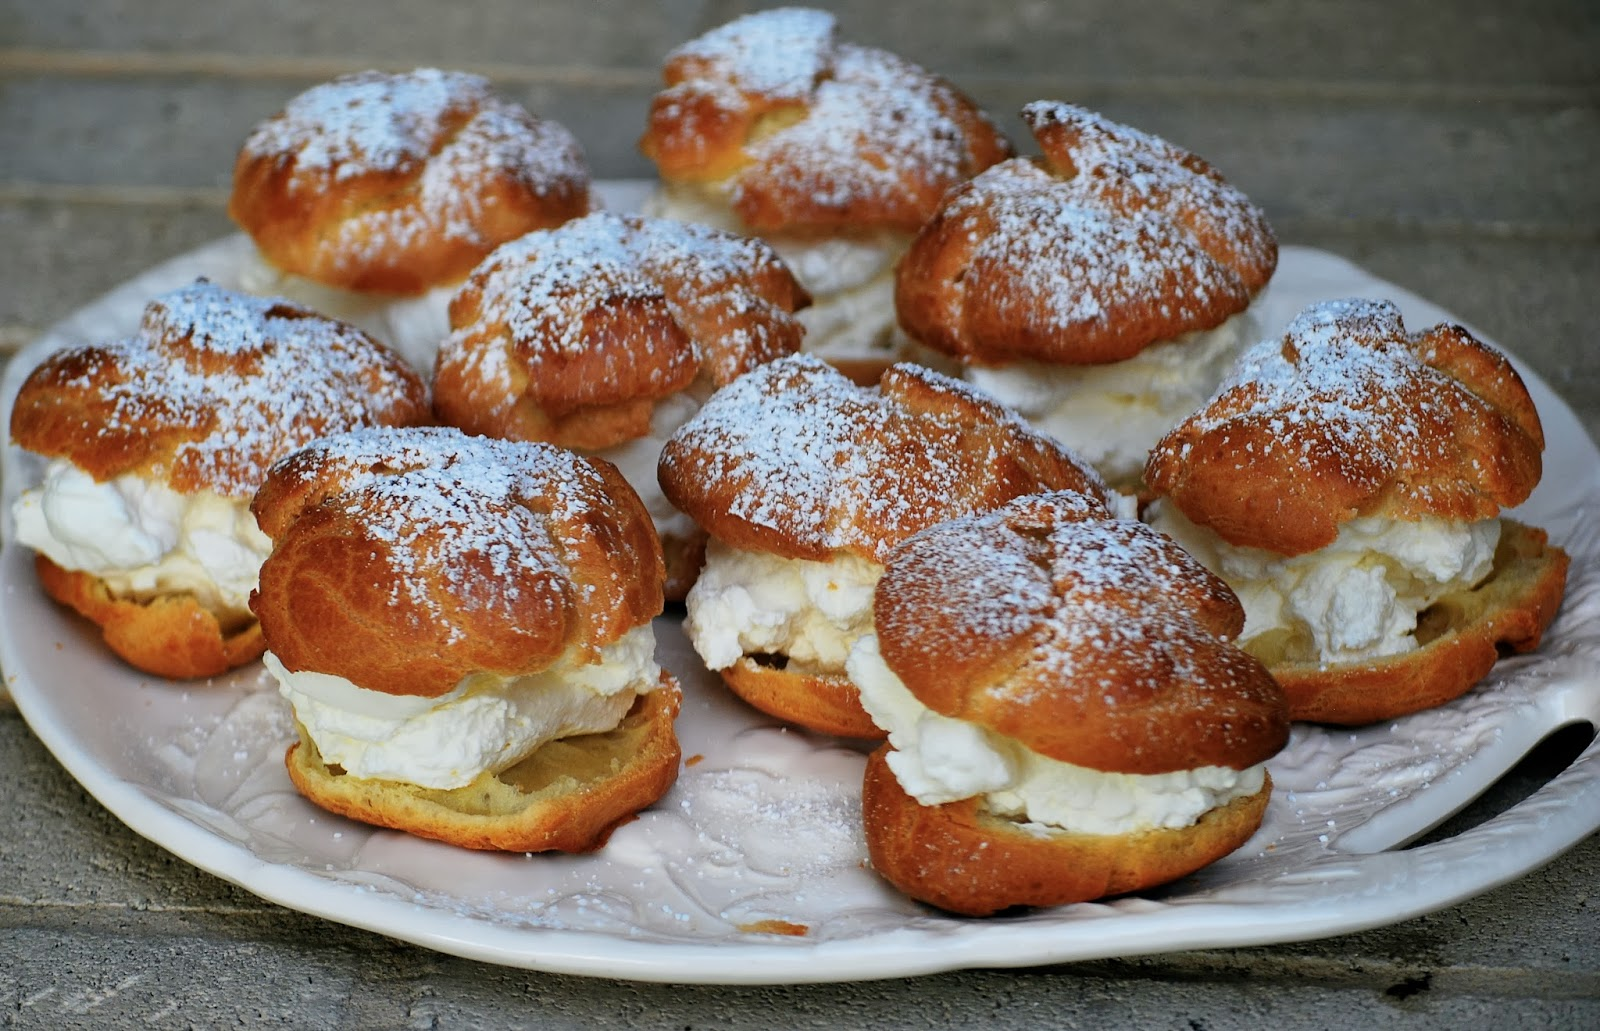 Pastry Cream Filling Filled With Whipped Cream